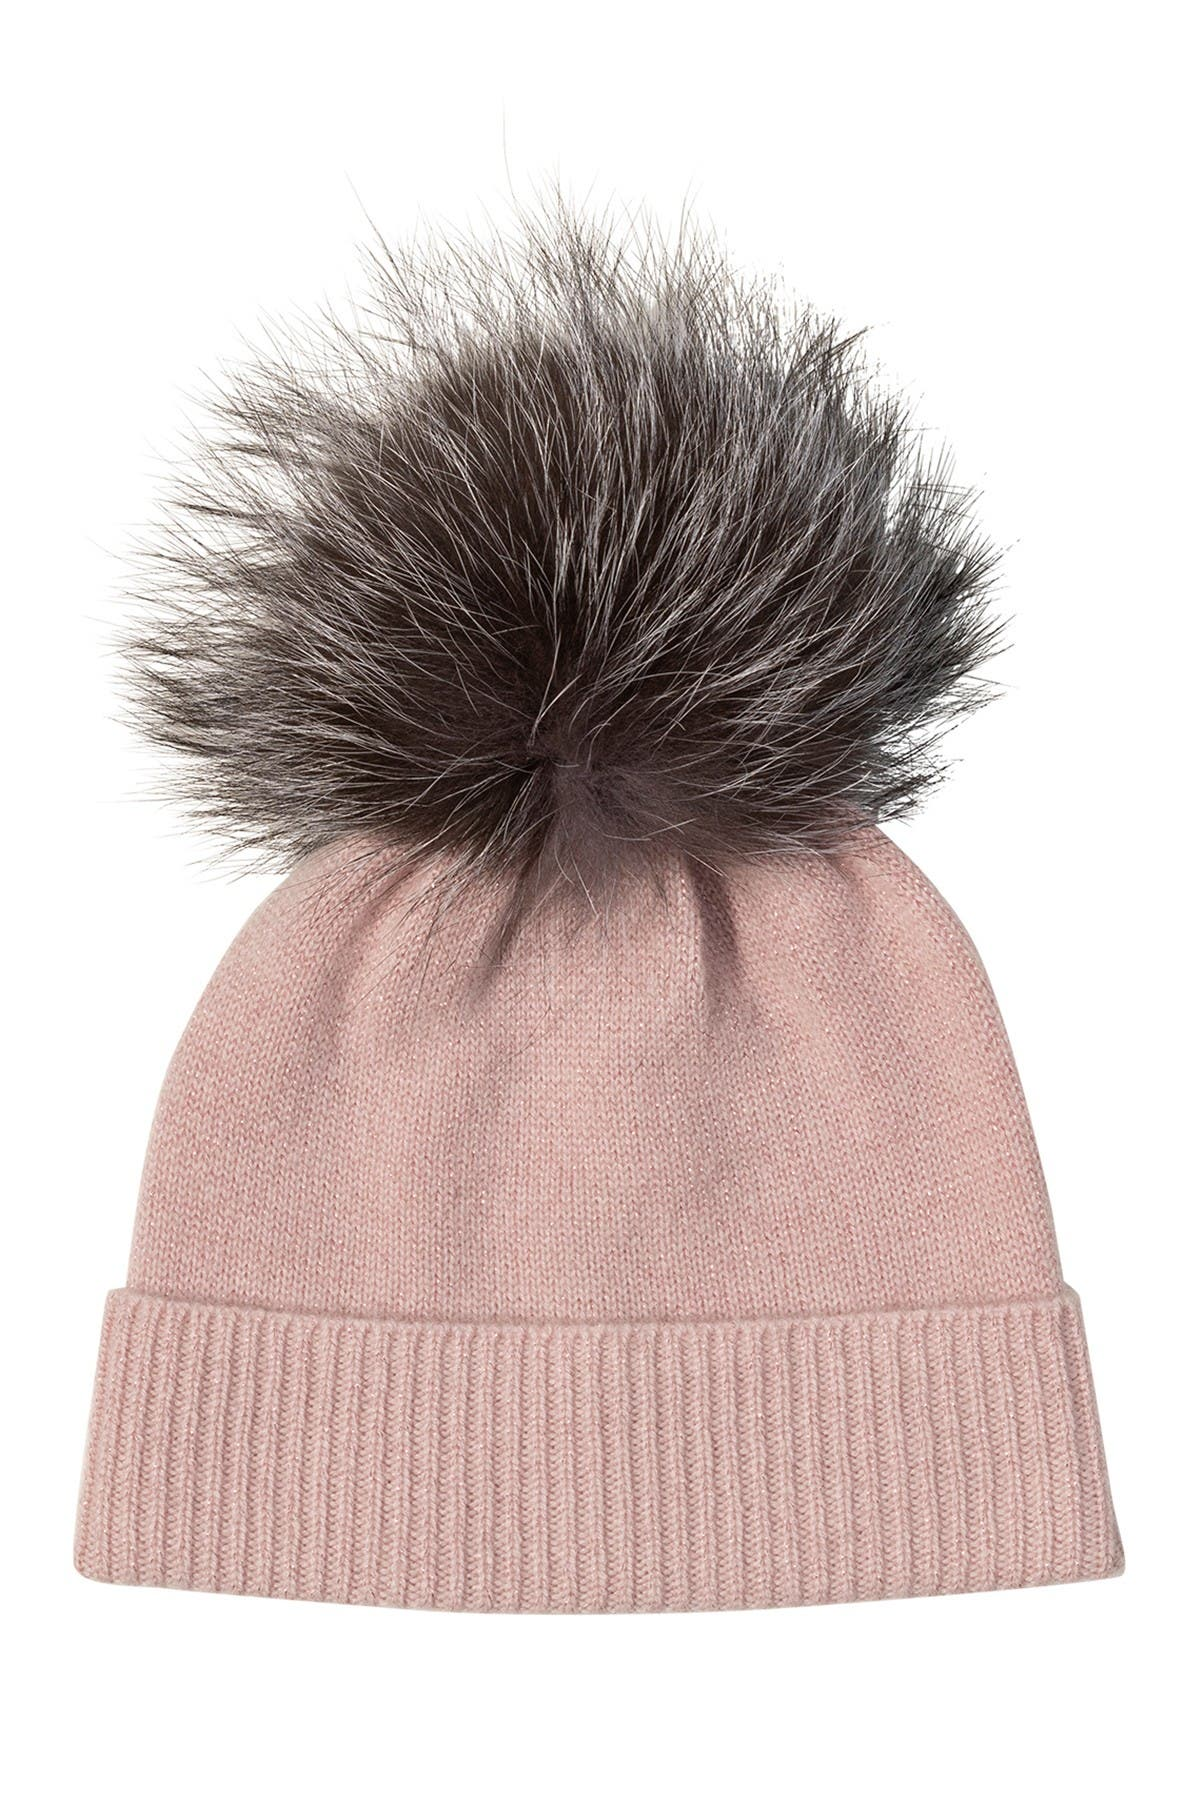 Image of AMICALE Cashmere Cuffed Lurex Hat with Genuine Fox Pom